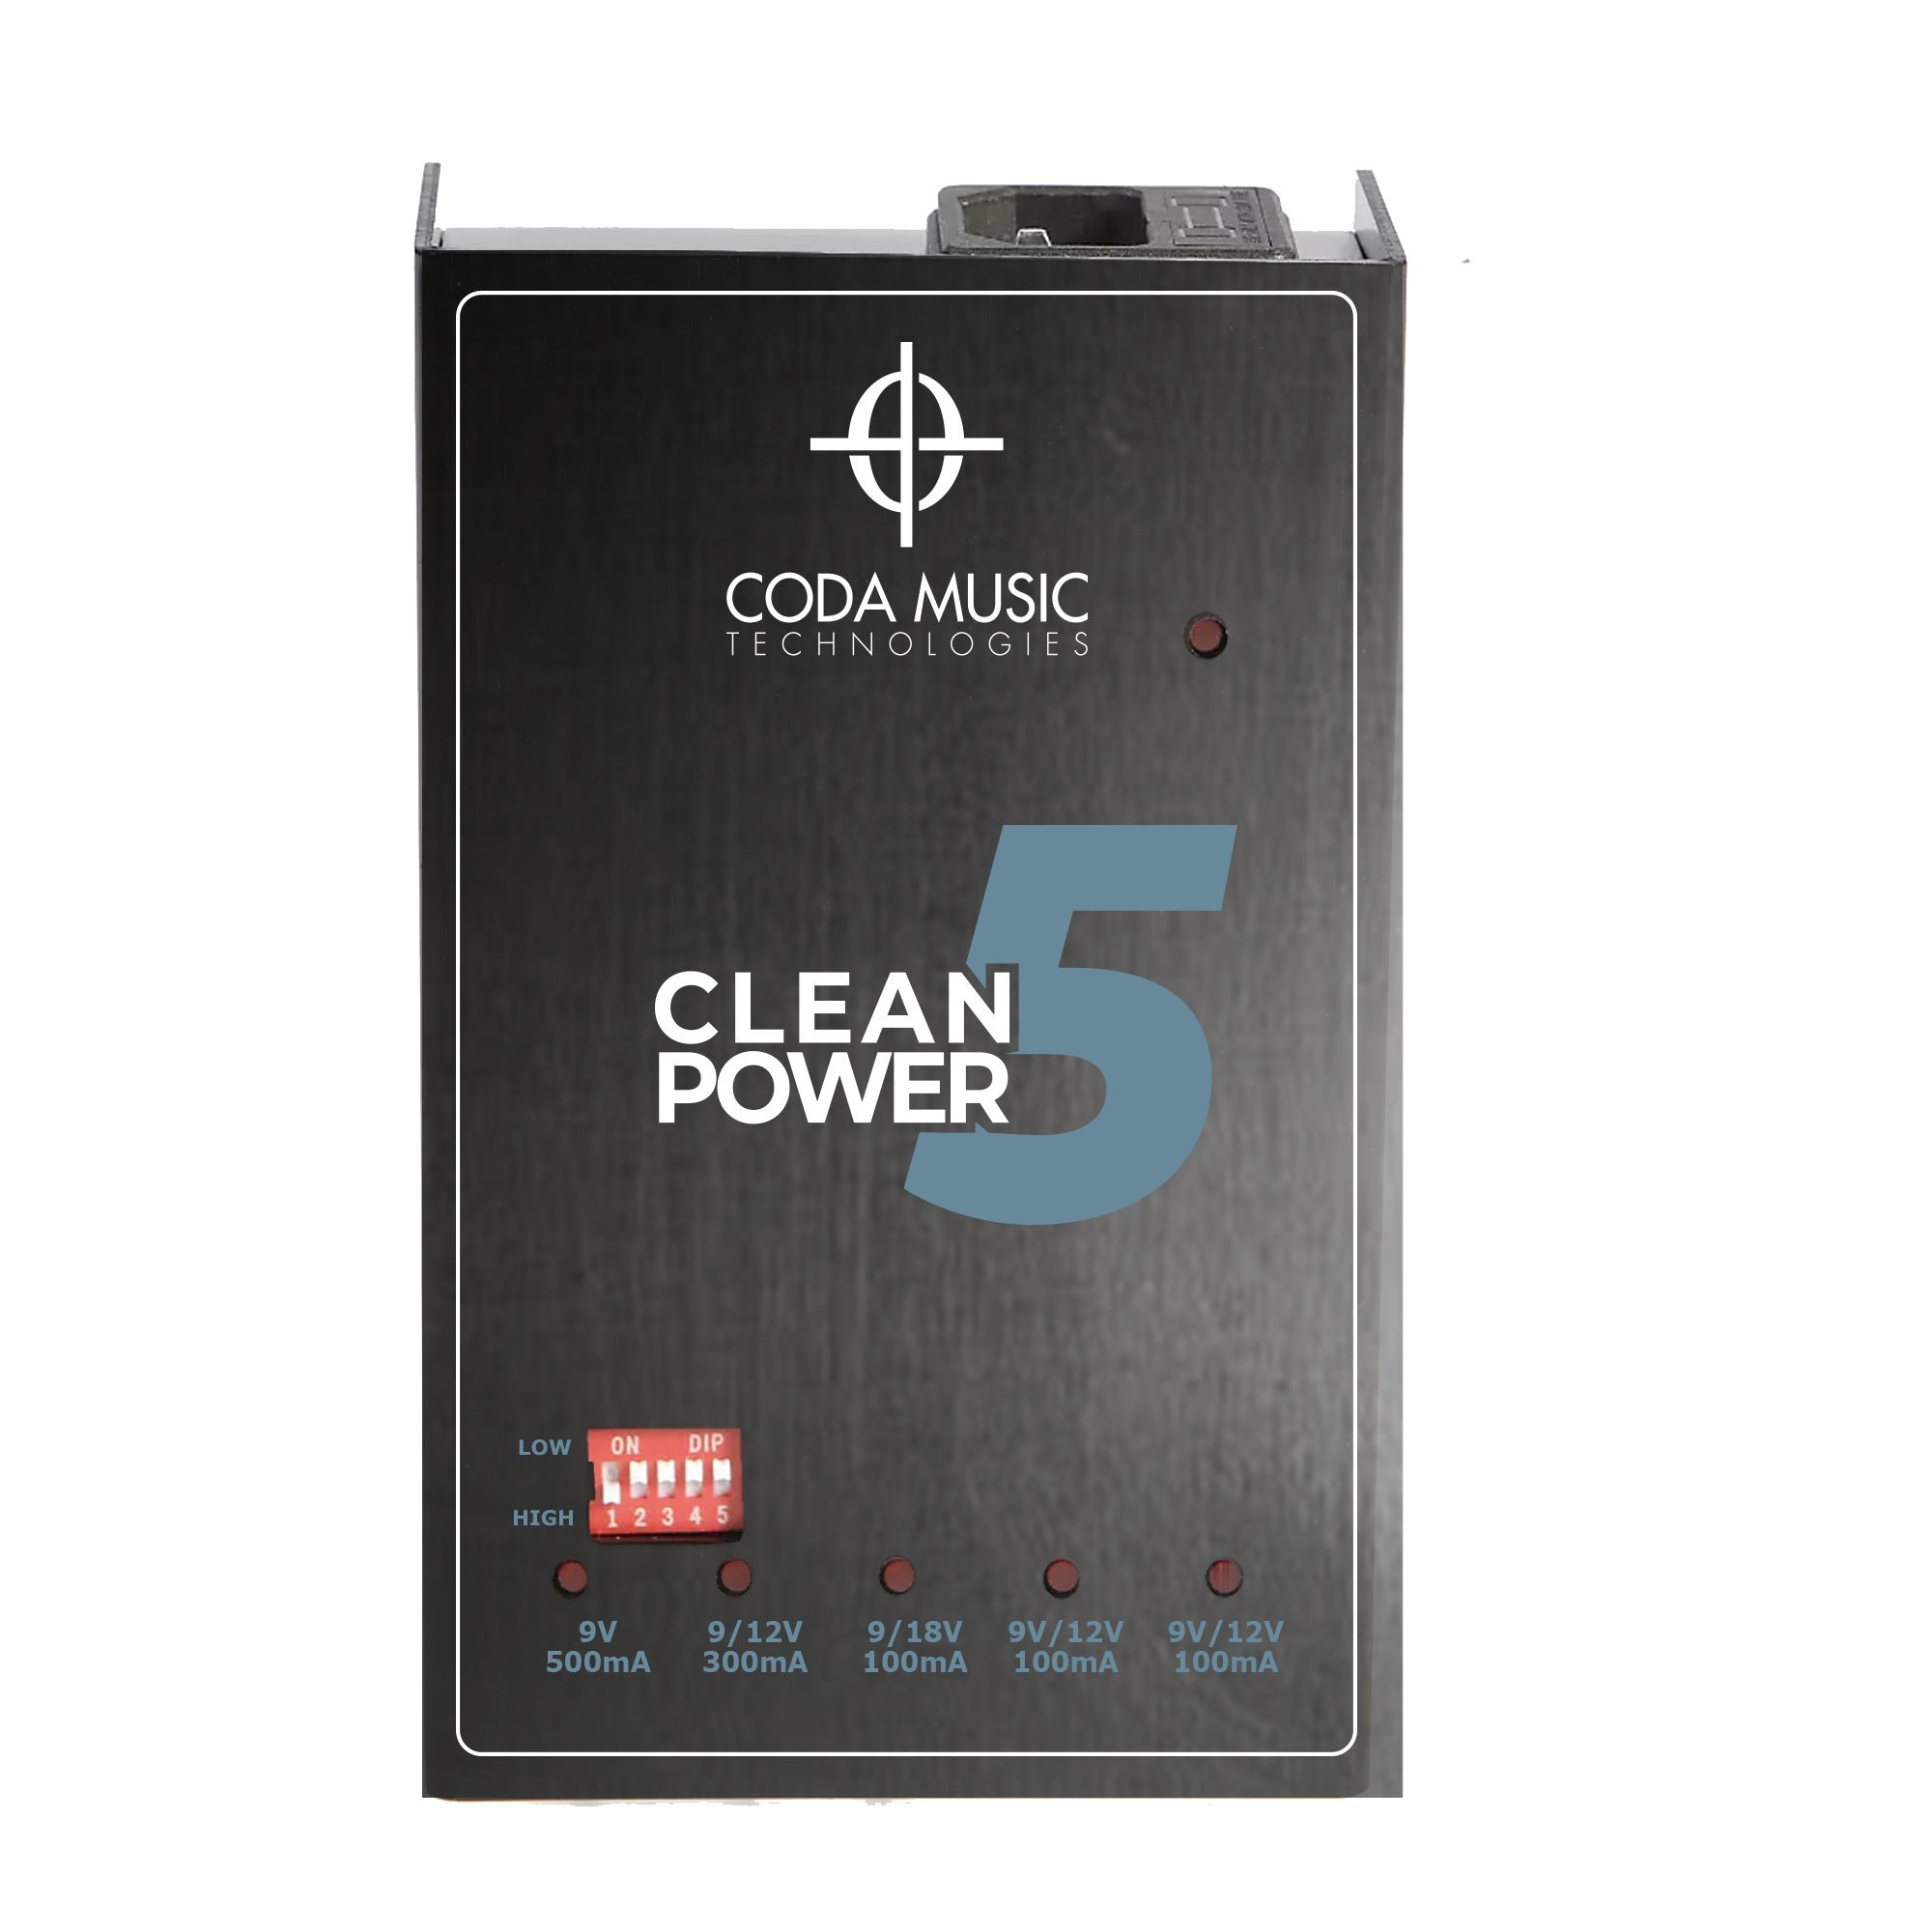 Clean Power 5 Isolated Guitar Pedal Power Supply w/Switchable Voltage by Coda Music Technologies by Coda Music Technologies